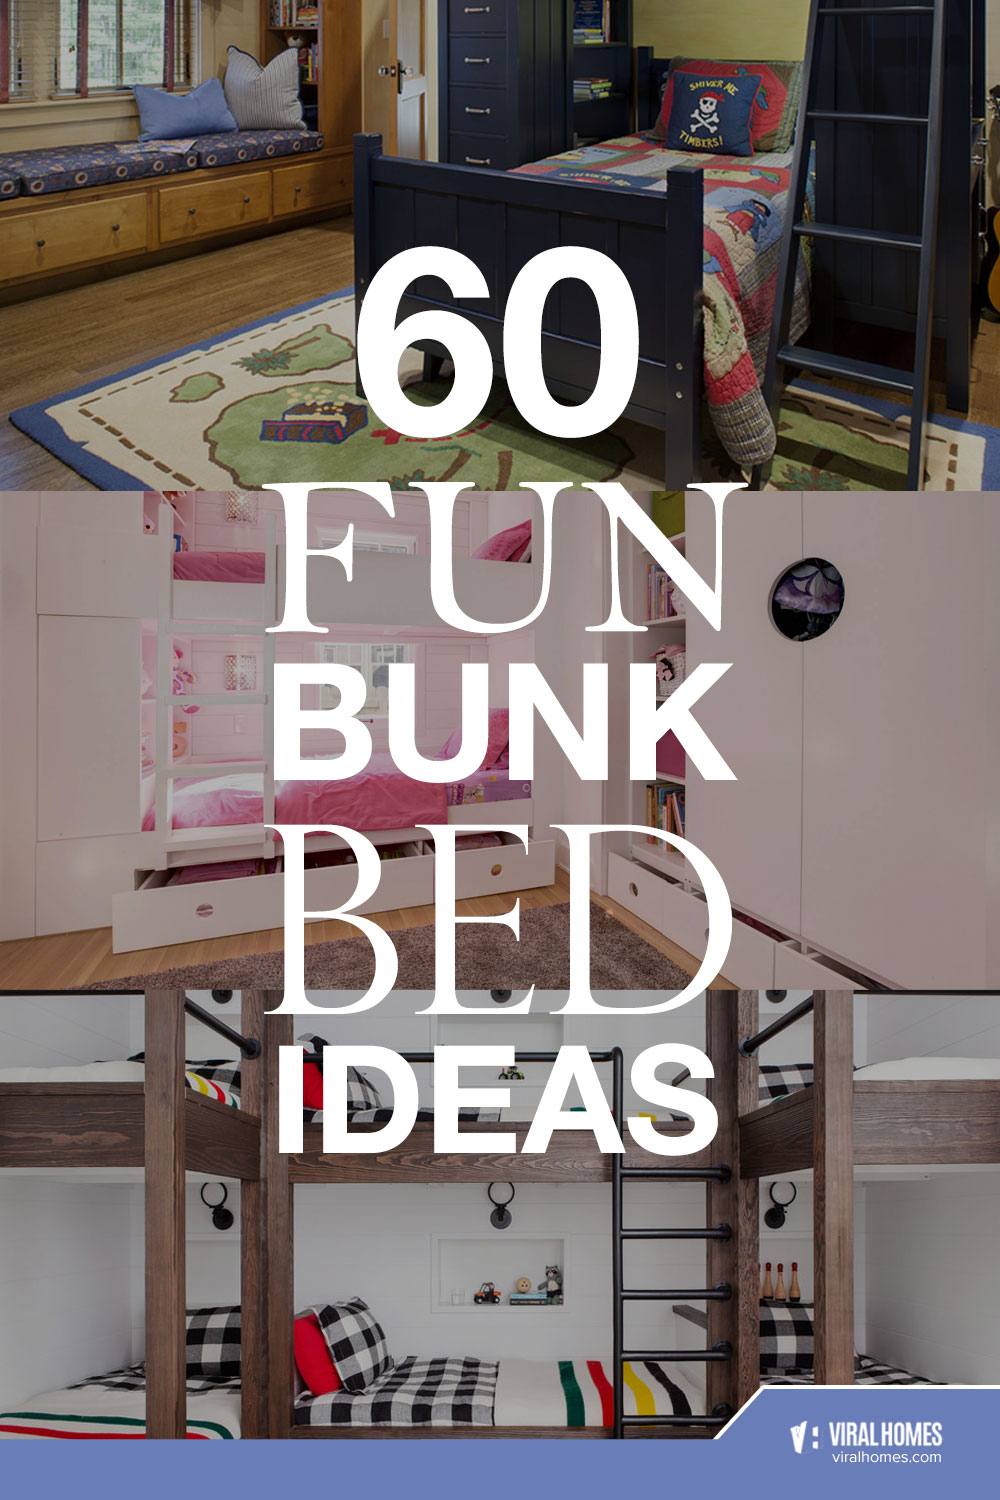 Fun Bunk Bed Ideas for the Little Kids to Have Fun With